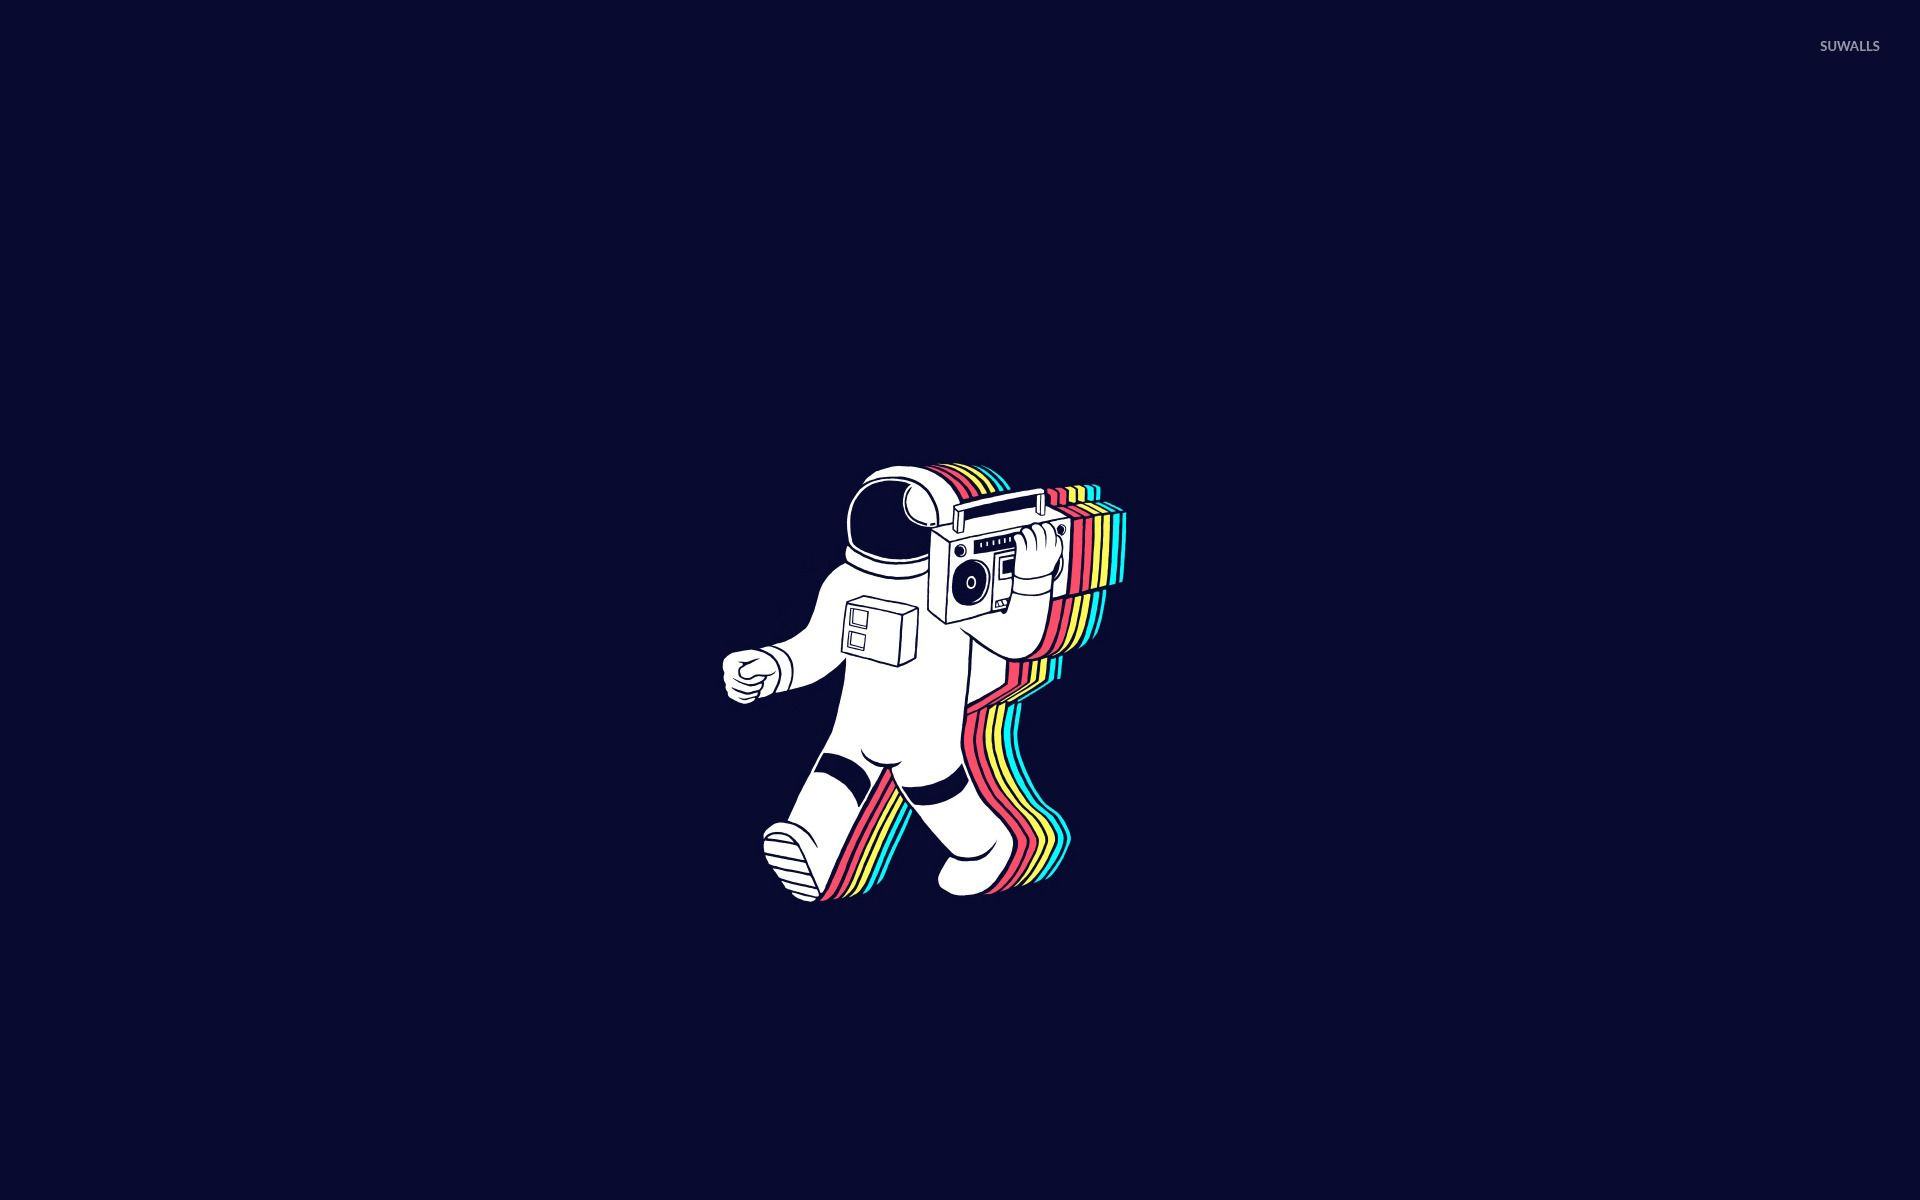 Astronaut Wallpaper Hd Resolution Astronaut wallpaper